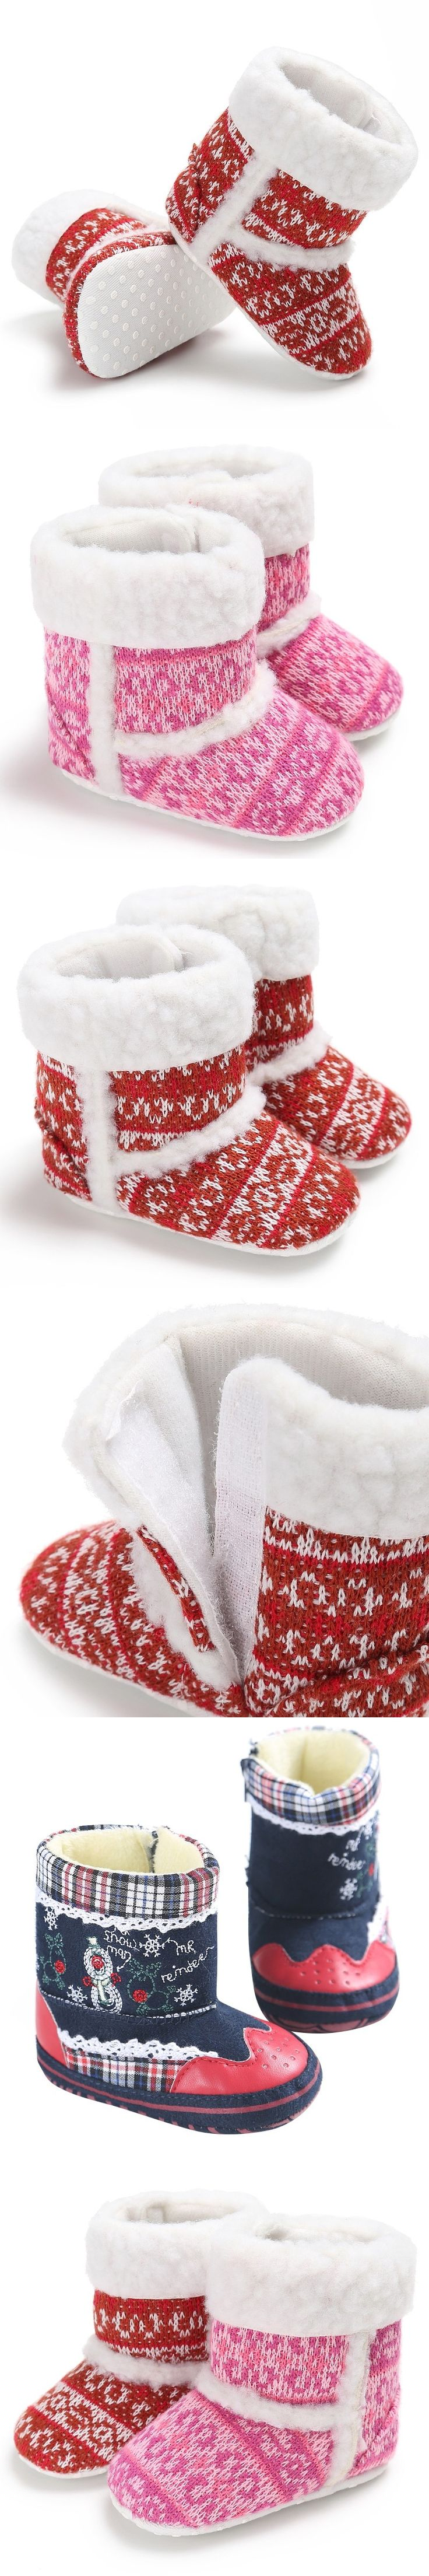 Infant Baby Winter Shoes Baby Girls First Walkers Toddler Soft Rubber Soled Anti-slip Boots Newborn Booties Warm